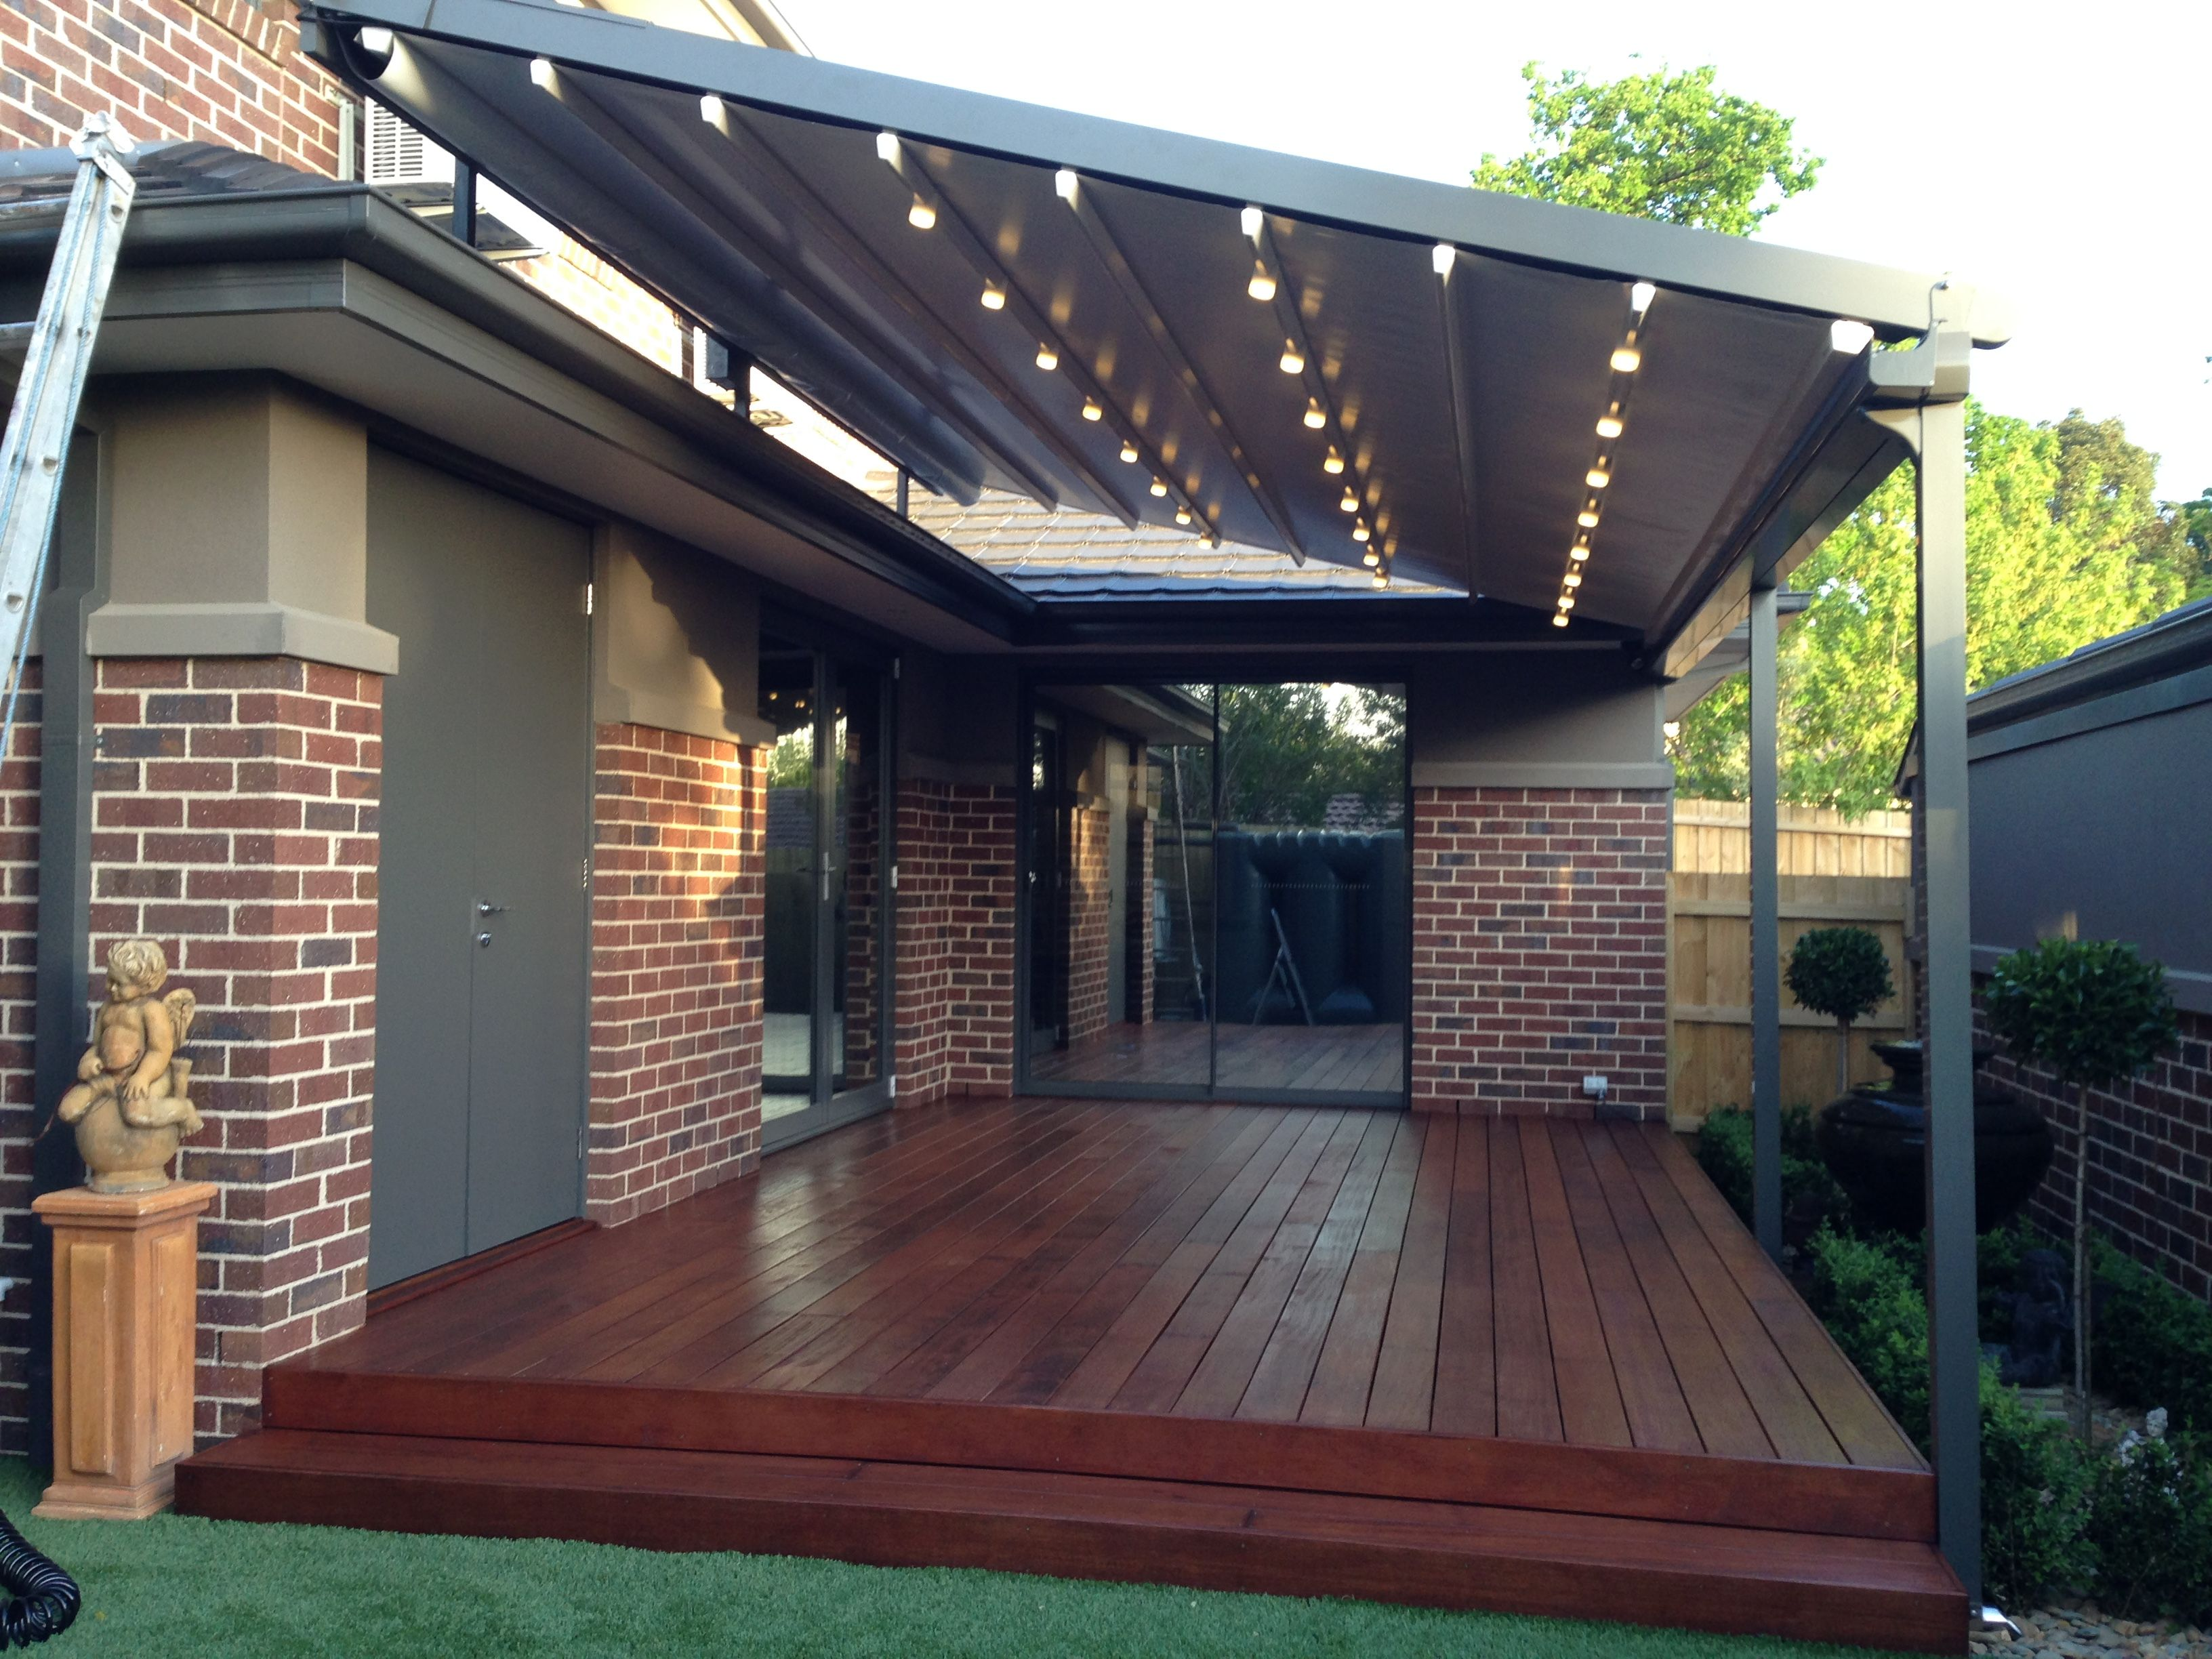 custom freestanding stobag victoria casabox awning awnings retractable screens more wizard products